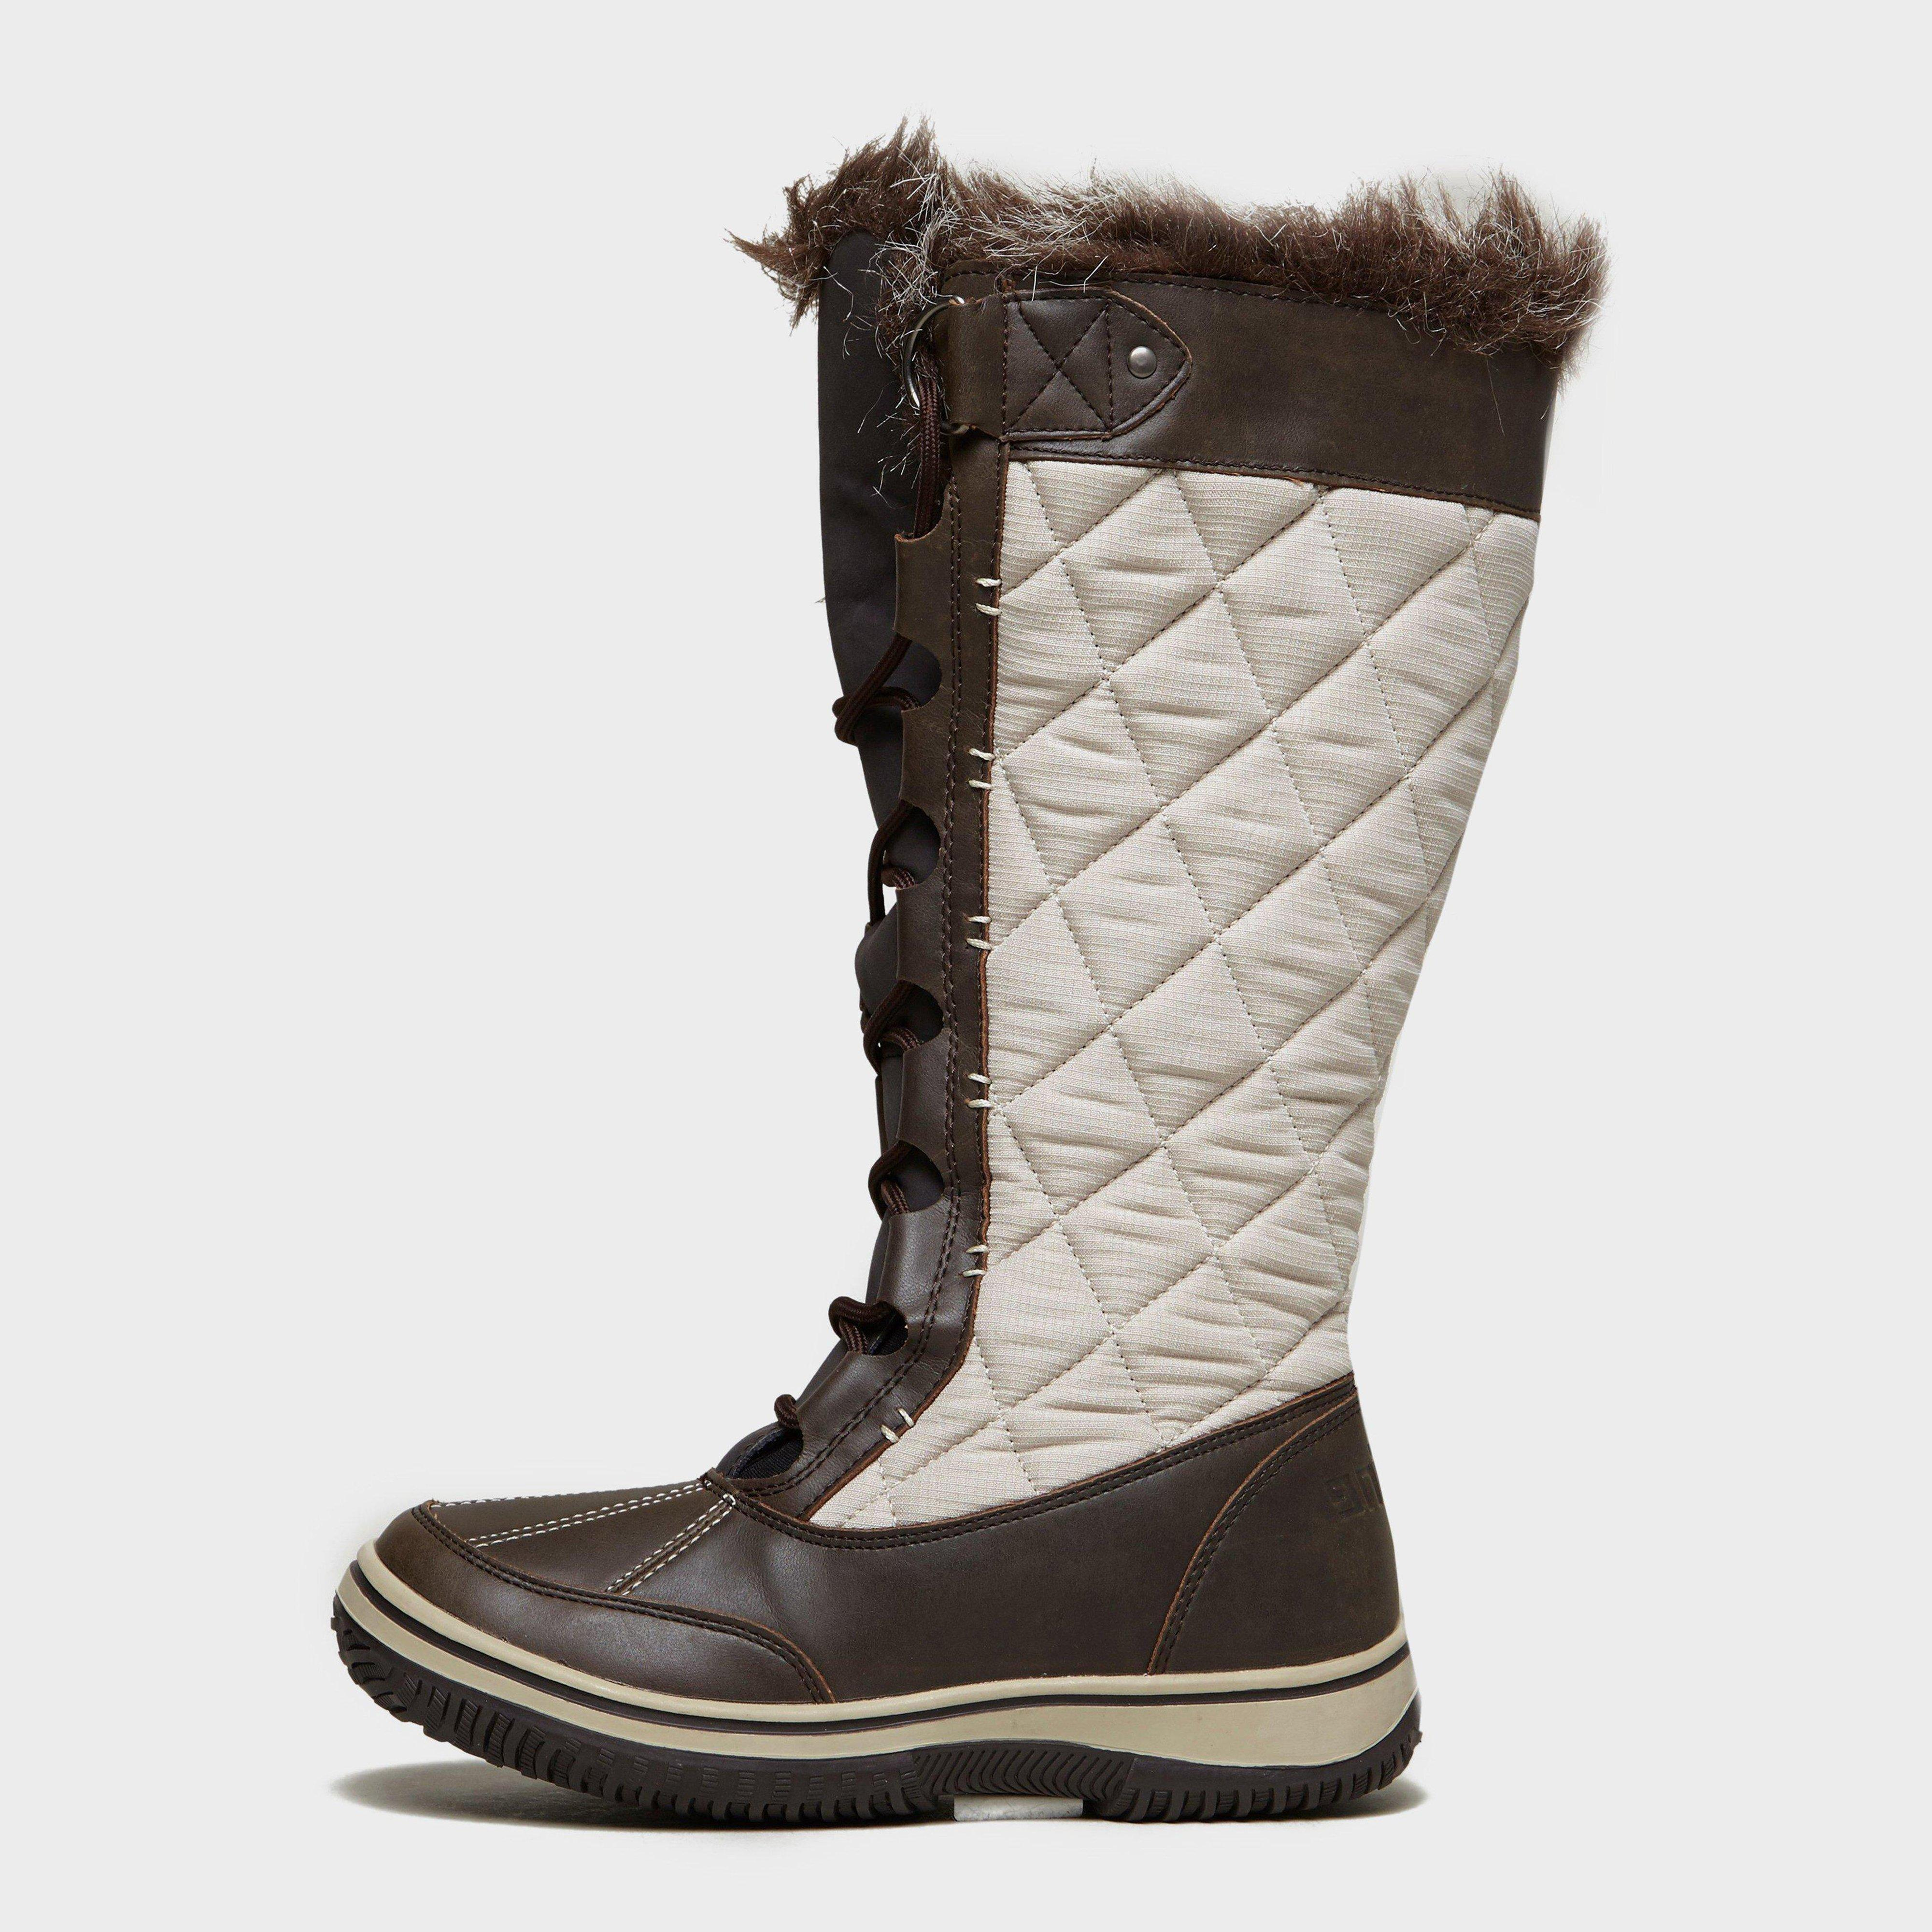 alpine s bundall snow boots